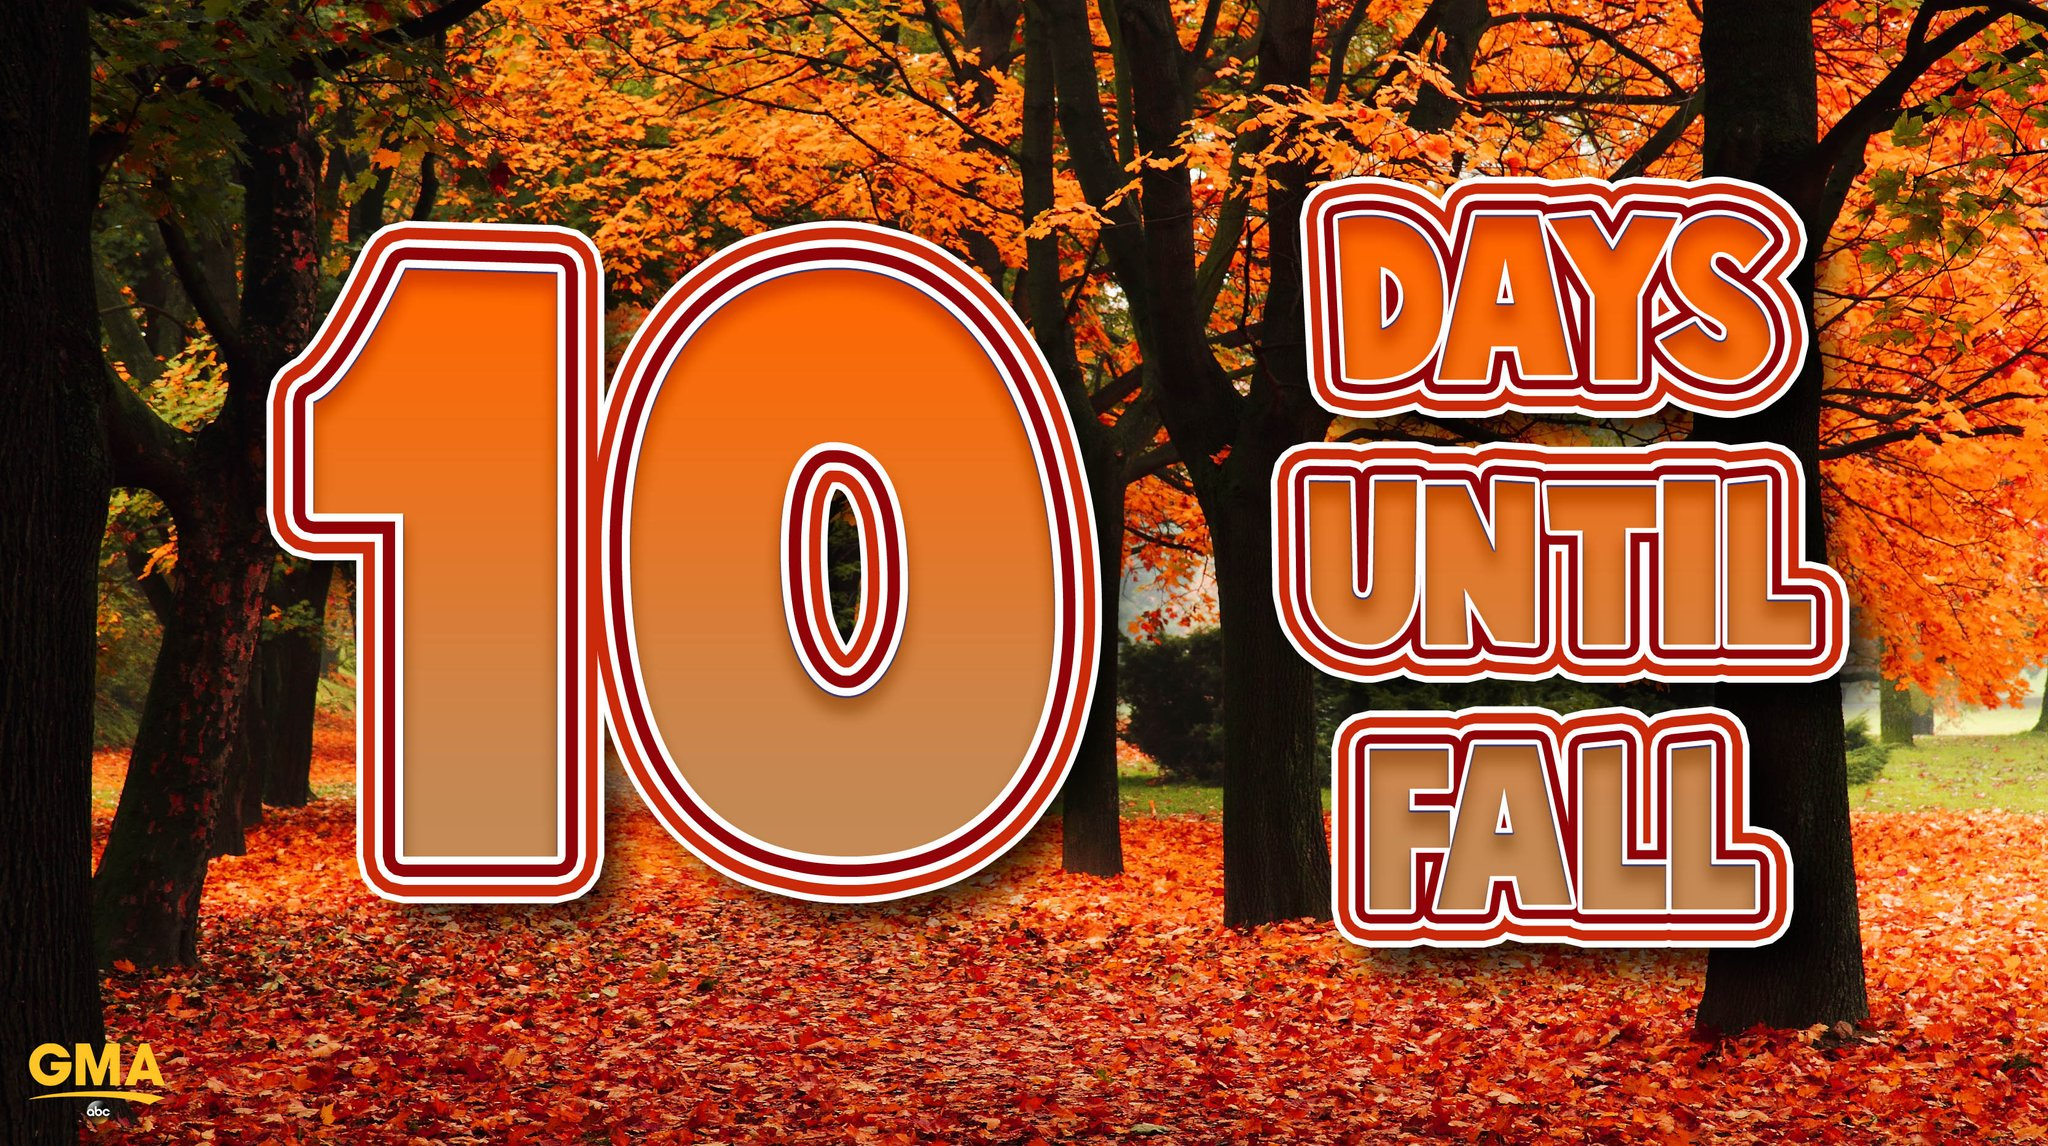 �� �� ONLY 10 DAYS UNTIL FALL �� �� https://t.co/rXSUqCqOKQ